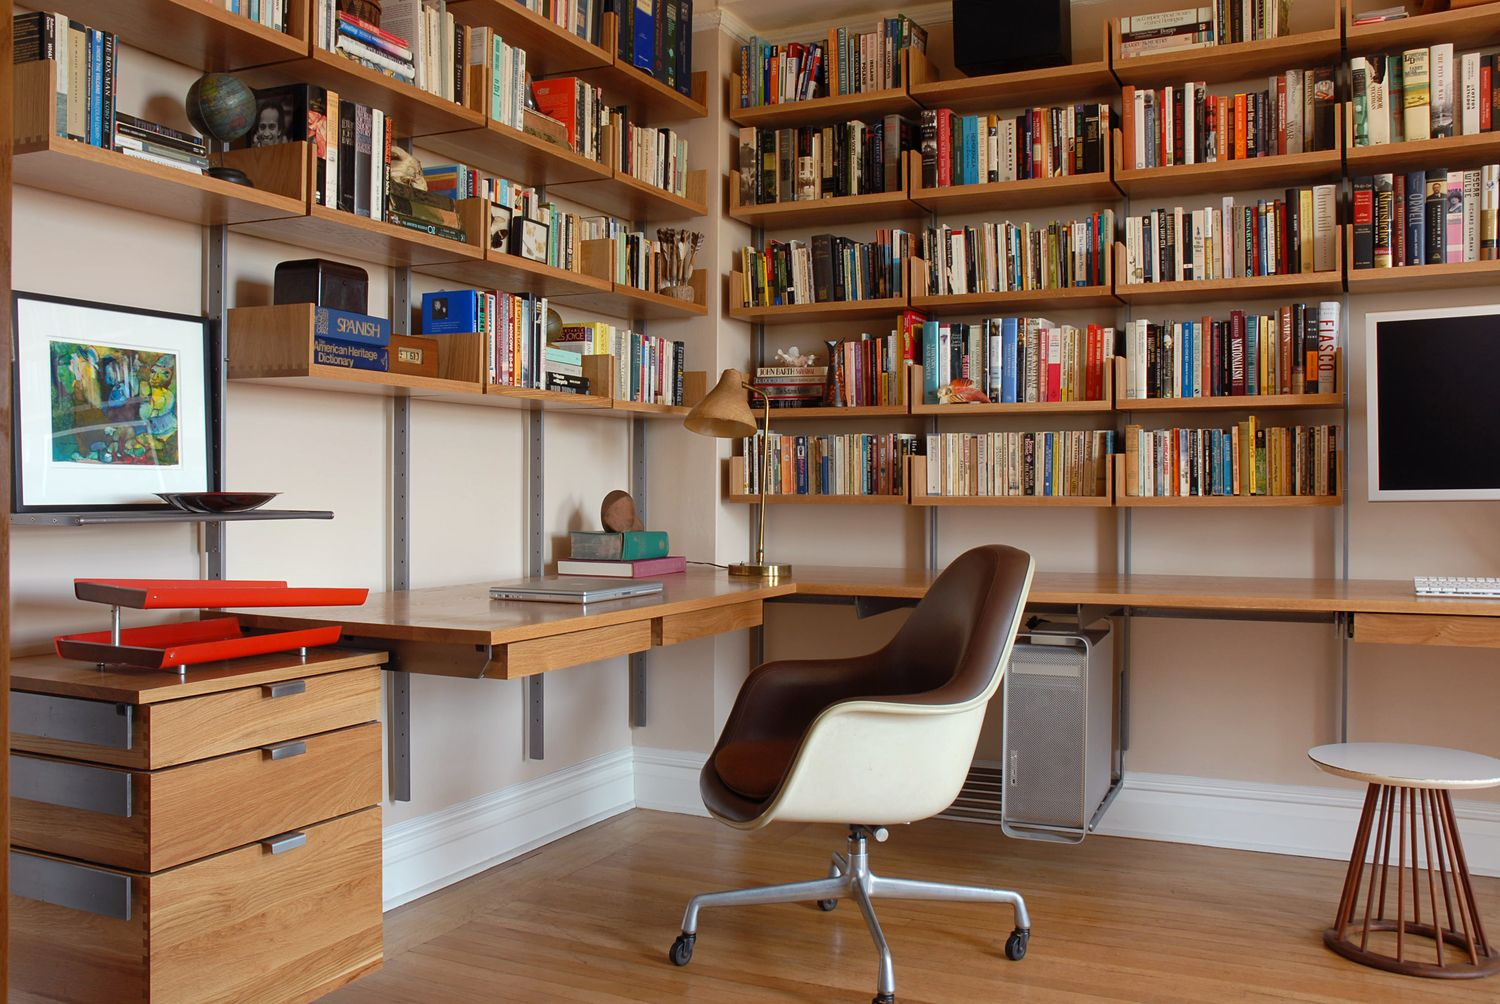 As4 Modular Office Configuration In Solid White Oak Cold Rolled Steel Photograph By Atlas I Small Office Furniture Modular Shelving Home Office Furniture